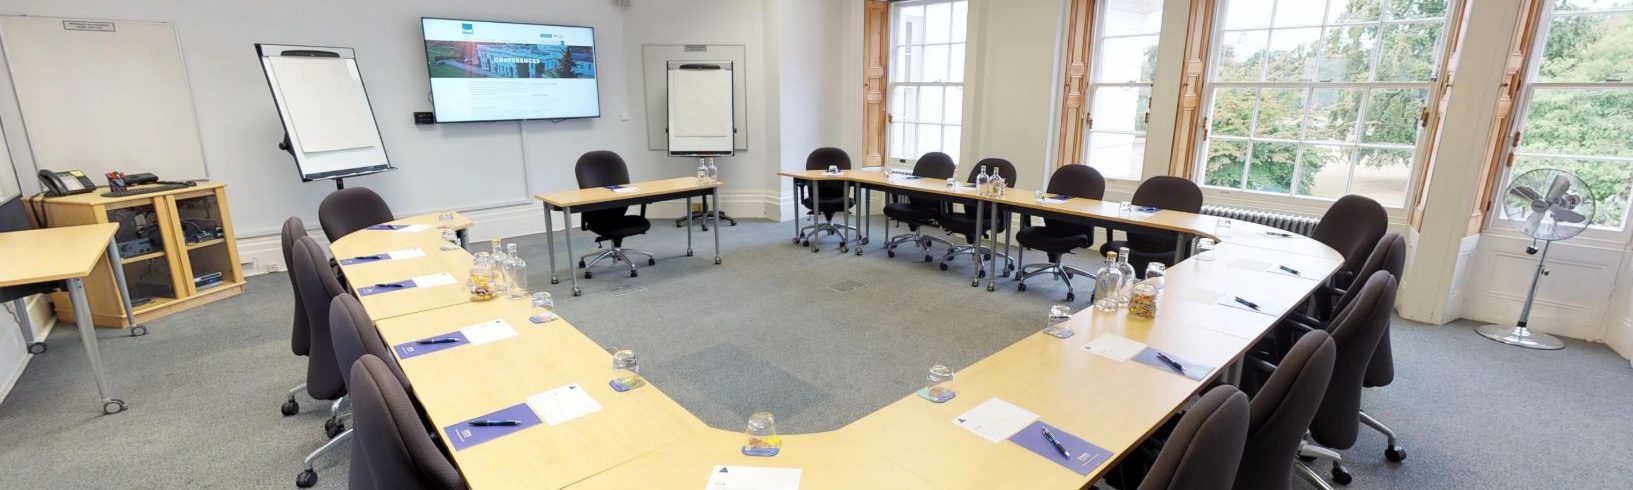 A photo of Henley Greenlands conference room setup